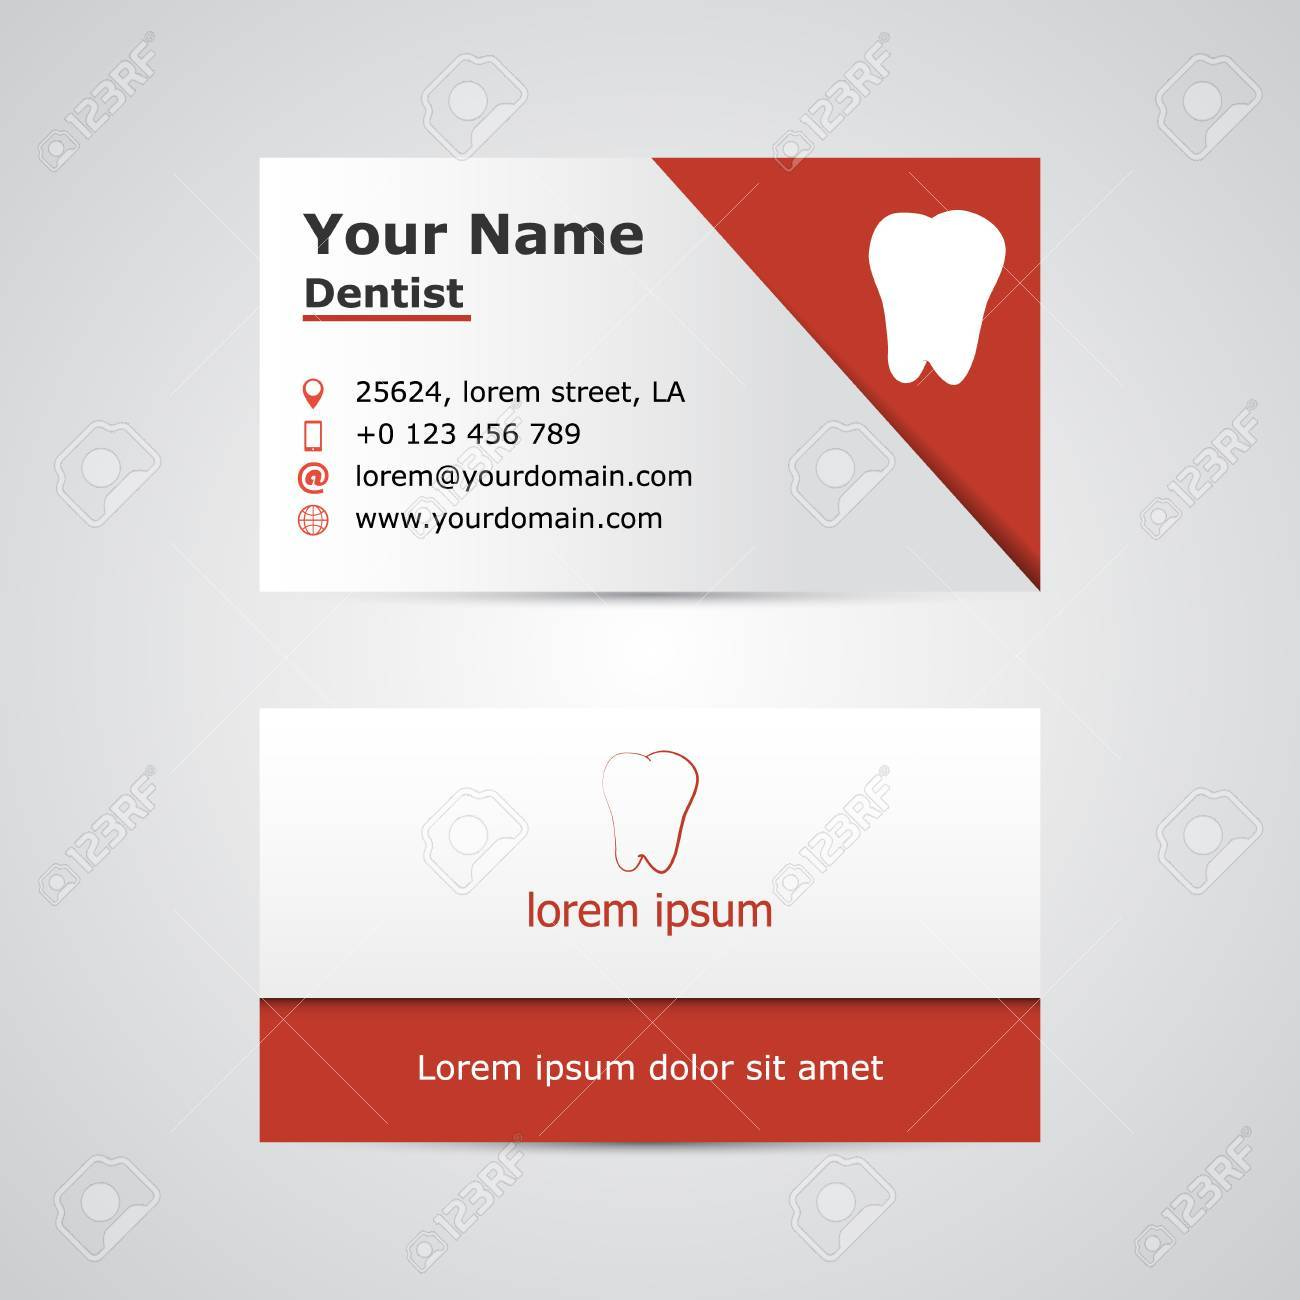 Dental business card template vector illustration royalty free dental business card template vector illustration stock vector 66269590 flashek Images